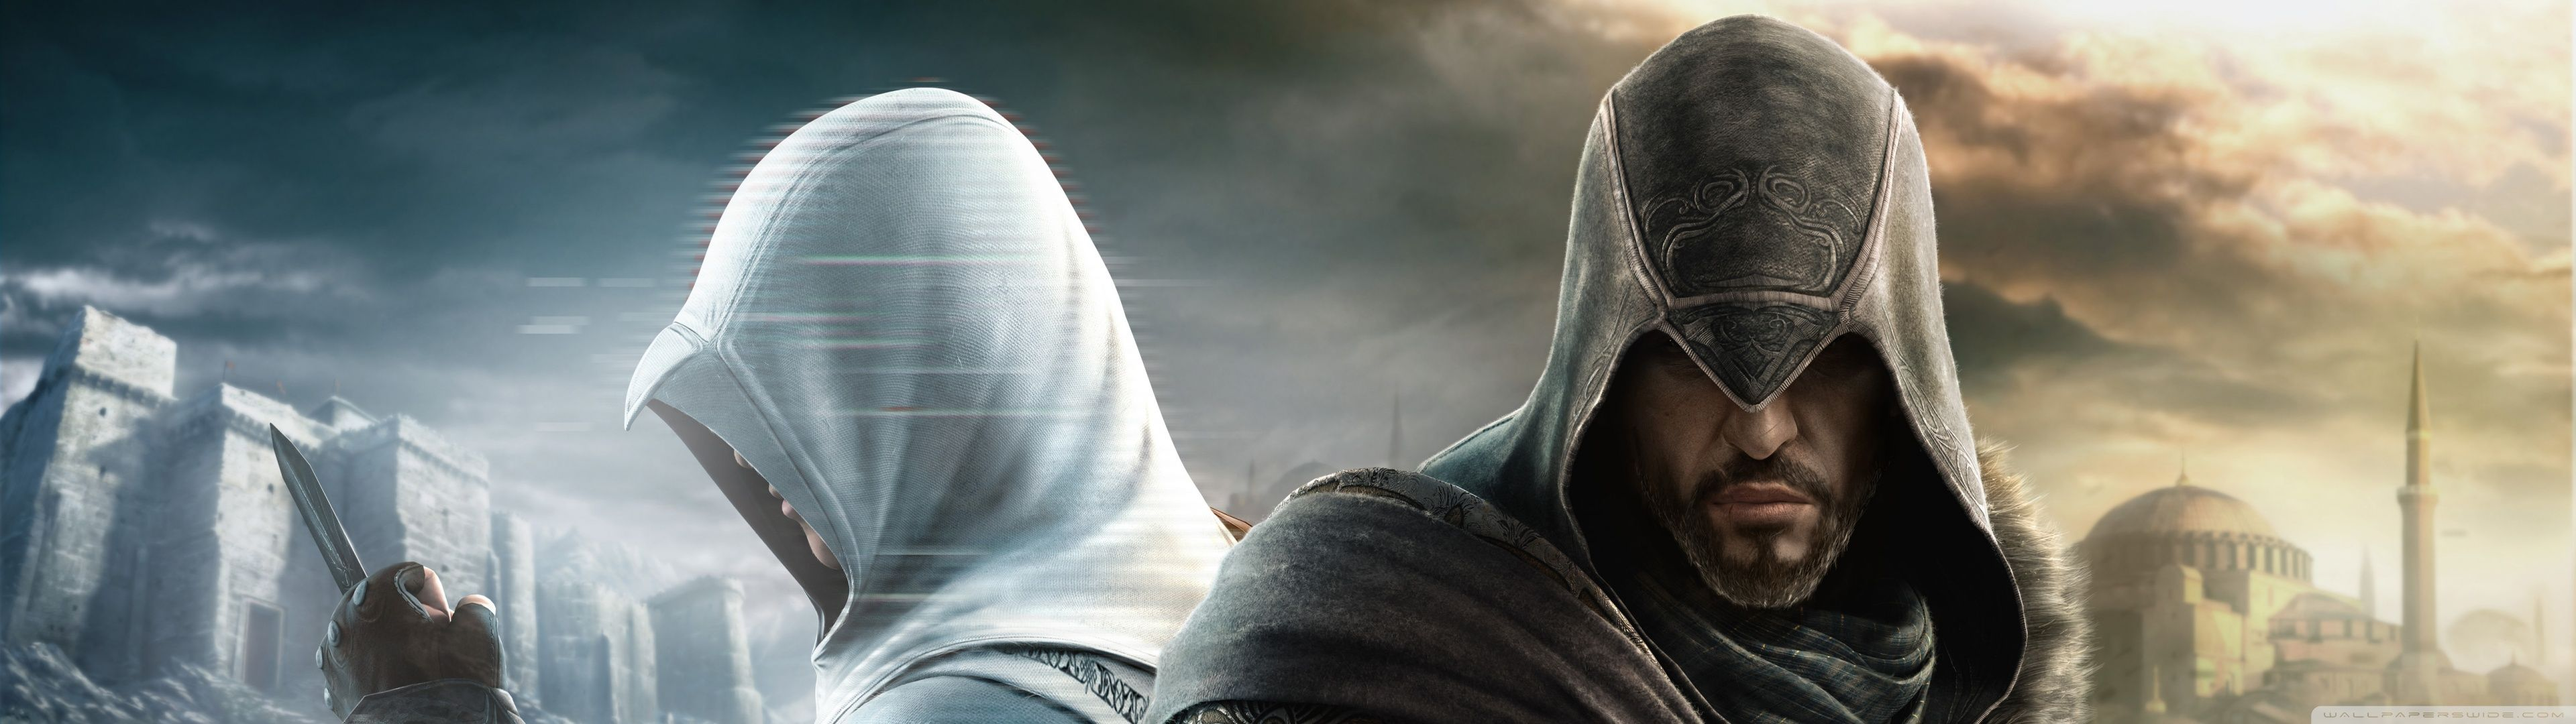 Assassin S Creed Dual Screen Wallpapers Top Free Assassin S Creed Dual Screen Backgrounds Wallpaperaccess